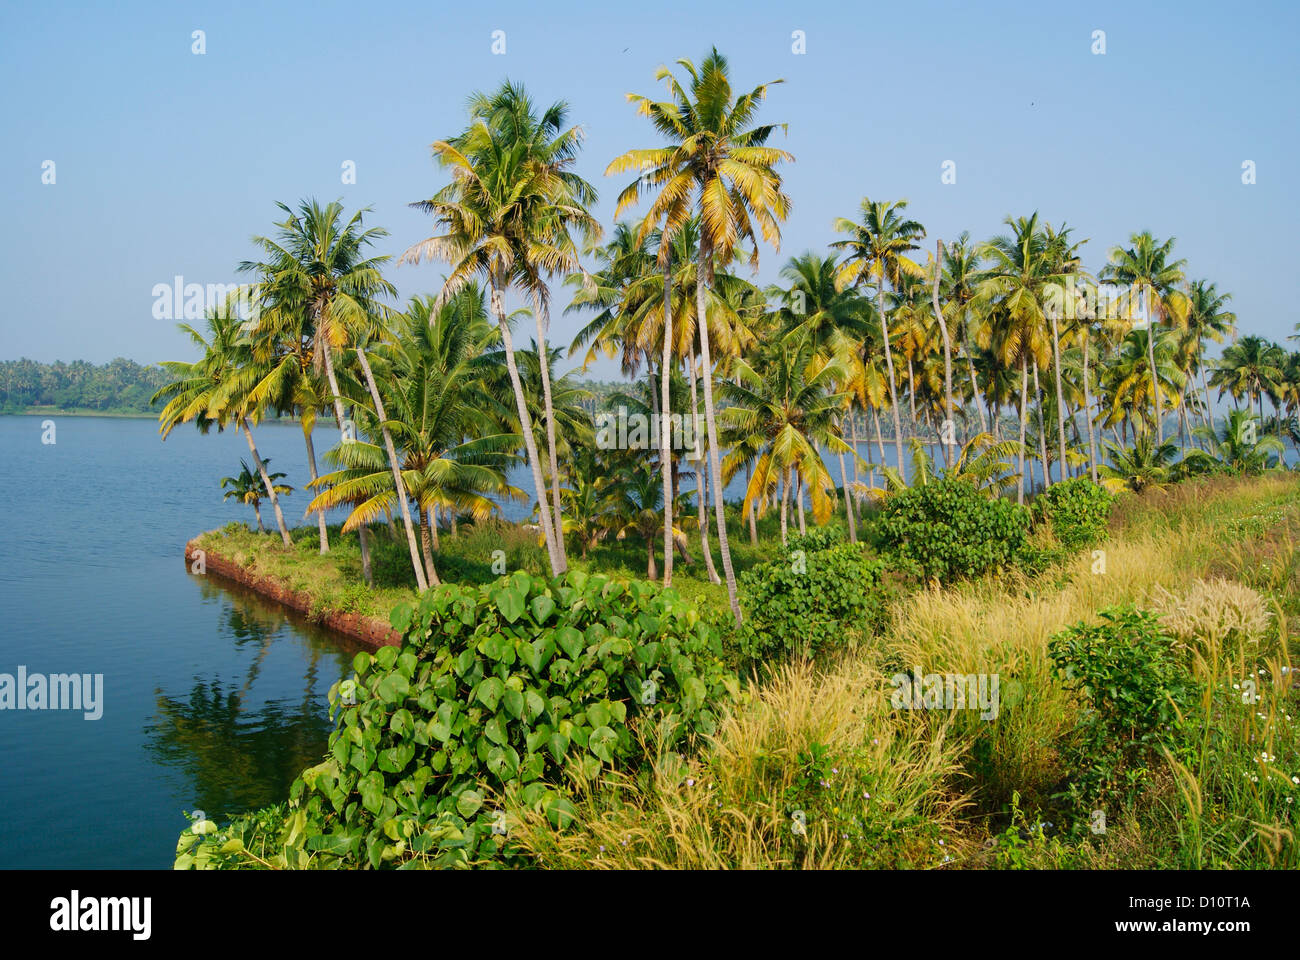 Kerala Backwaters and serene India Landscape Scenery view of coconut Tree Palms - Stock Image